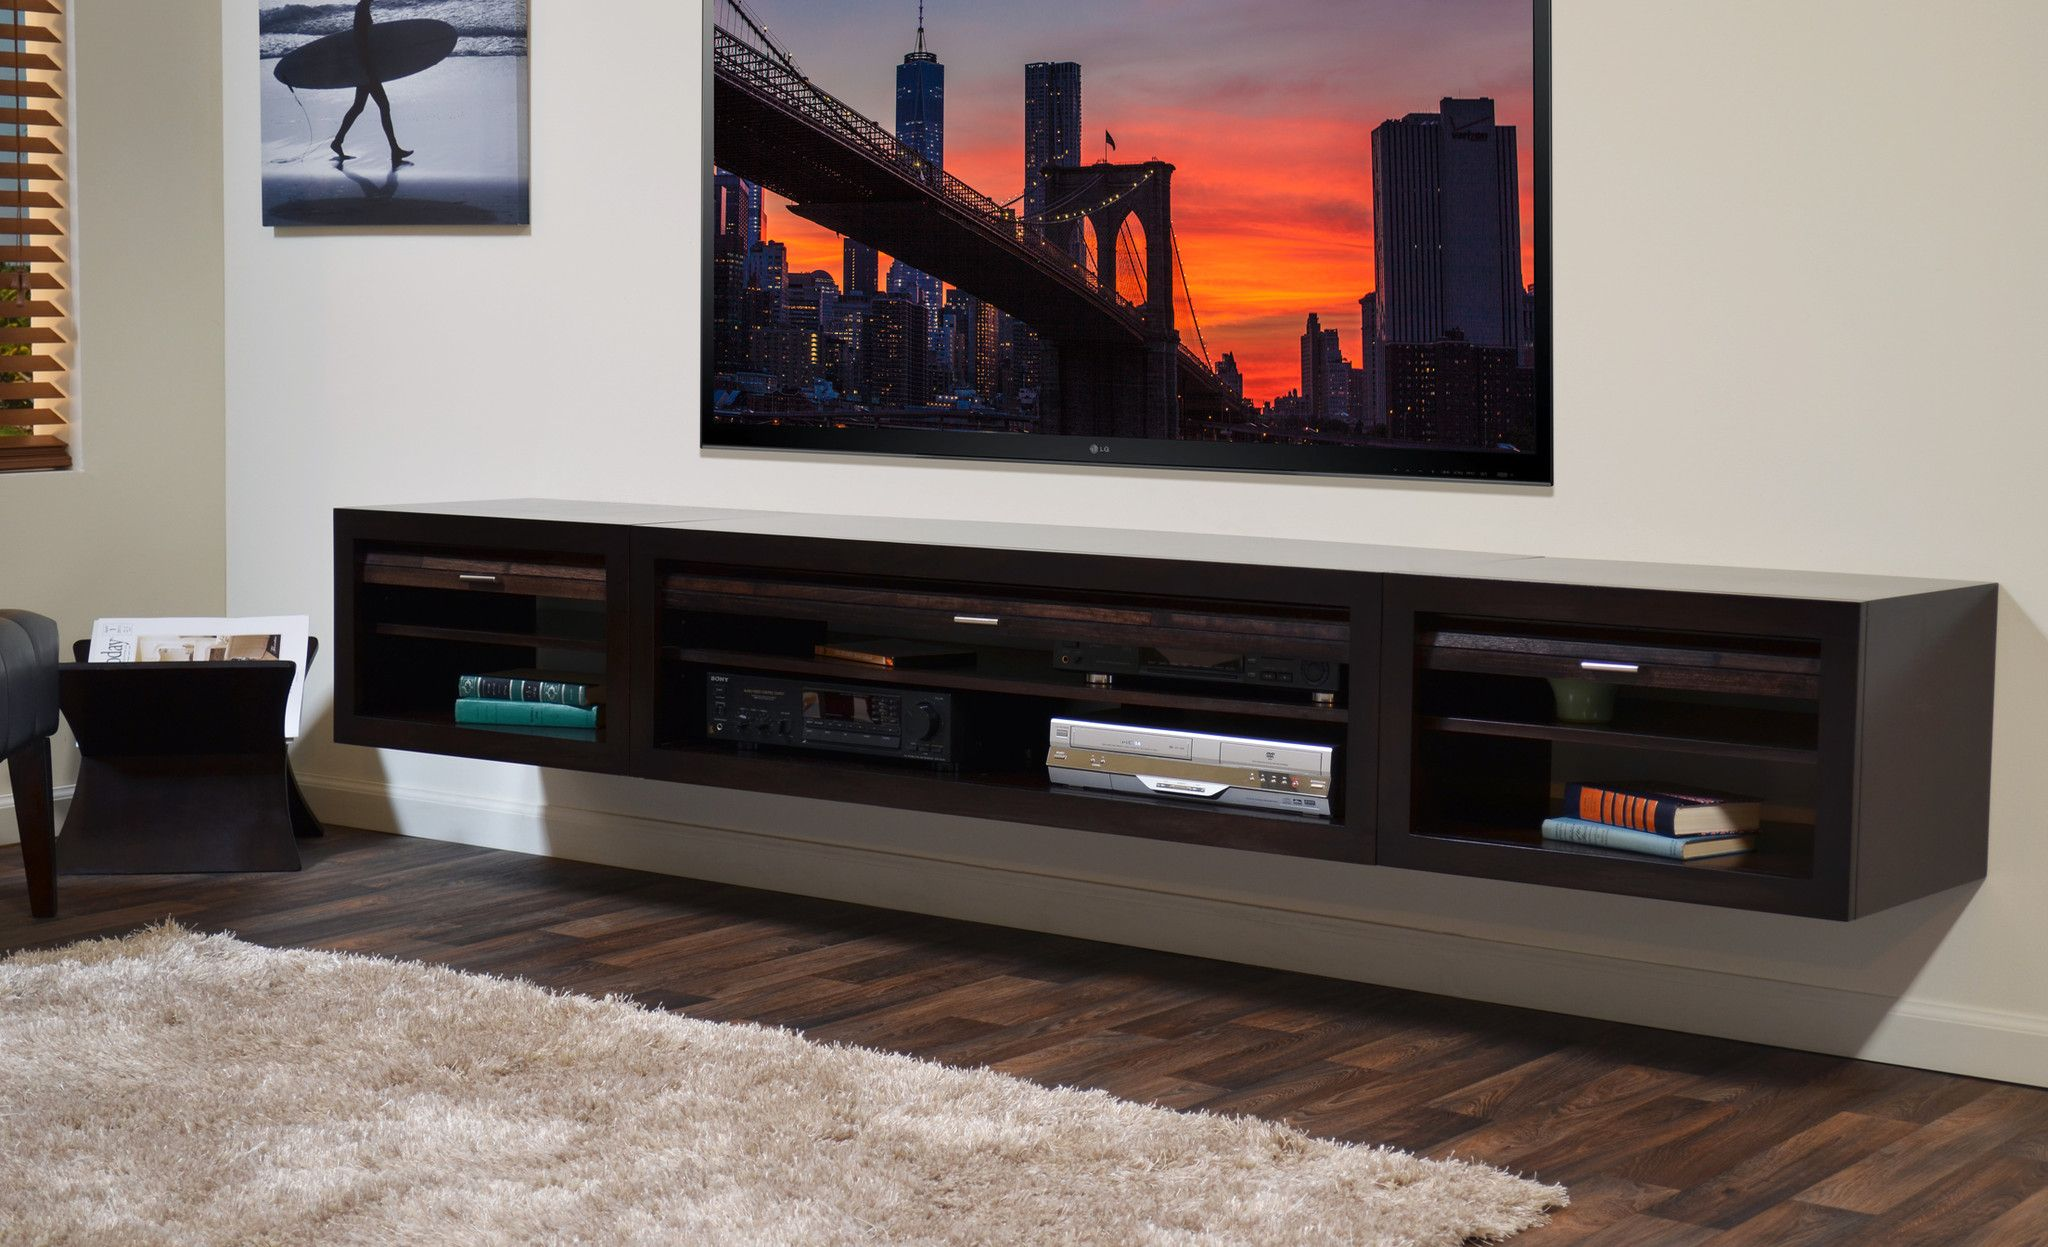 Tv Wall Mount Ideas Television Is One Of The Most Dominant Mass Media Tv Stand And Entertainment Center Diy Entertainment Center Floating Entertainment Center